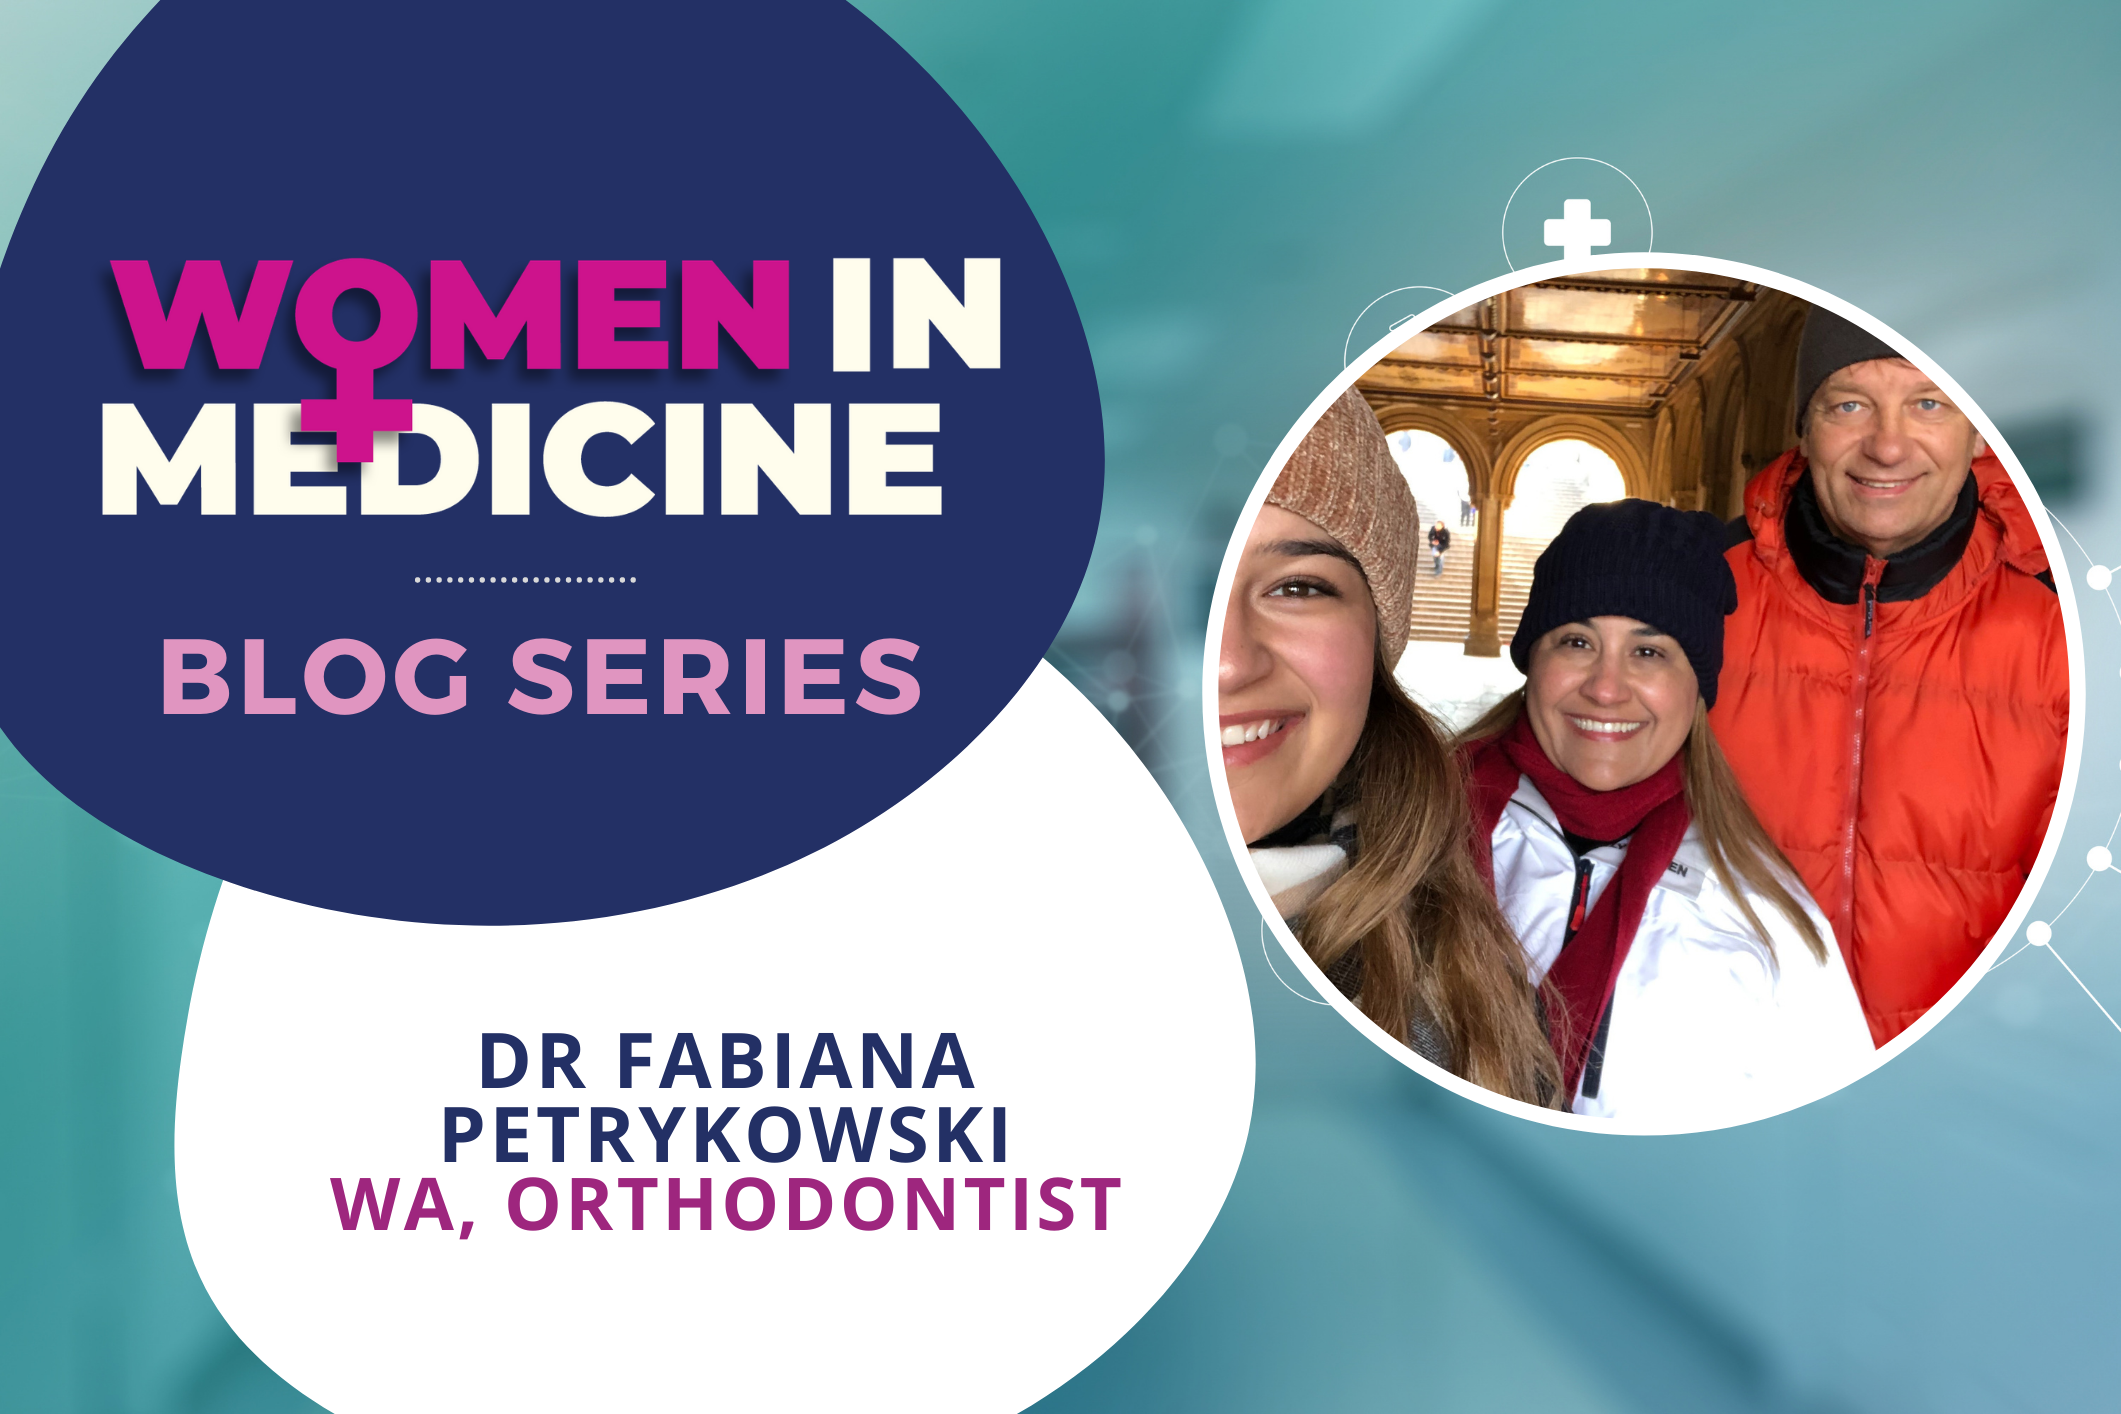 Women in Medicine LIVE - Courage, Resilience and Change: How far we have come Image